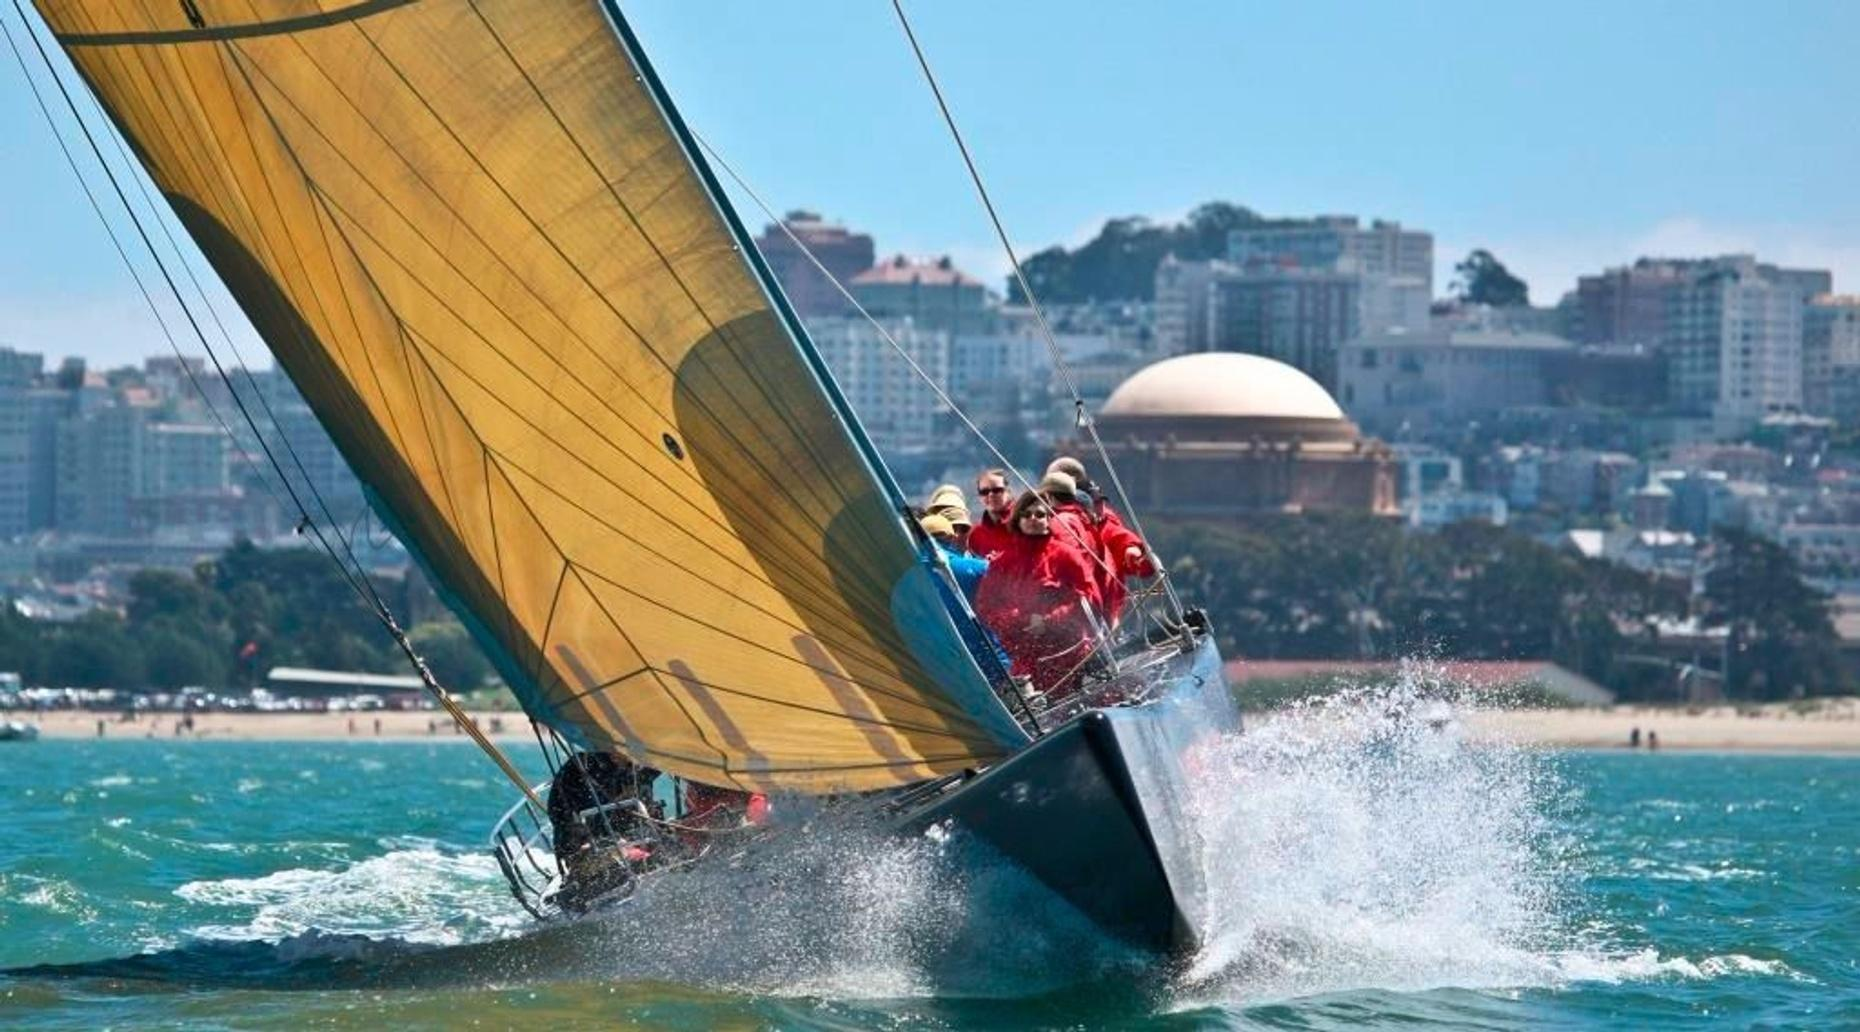 America's Cup Sailing Experience in San Francisco Bay